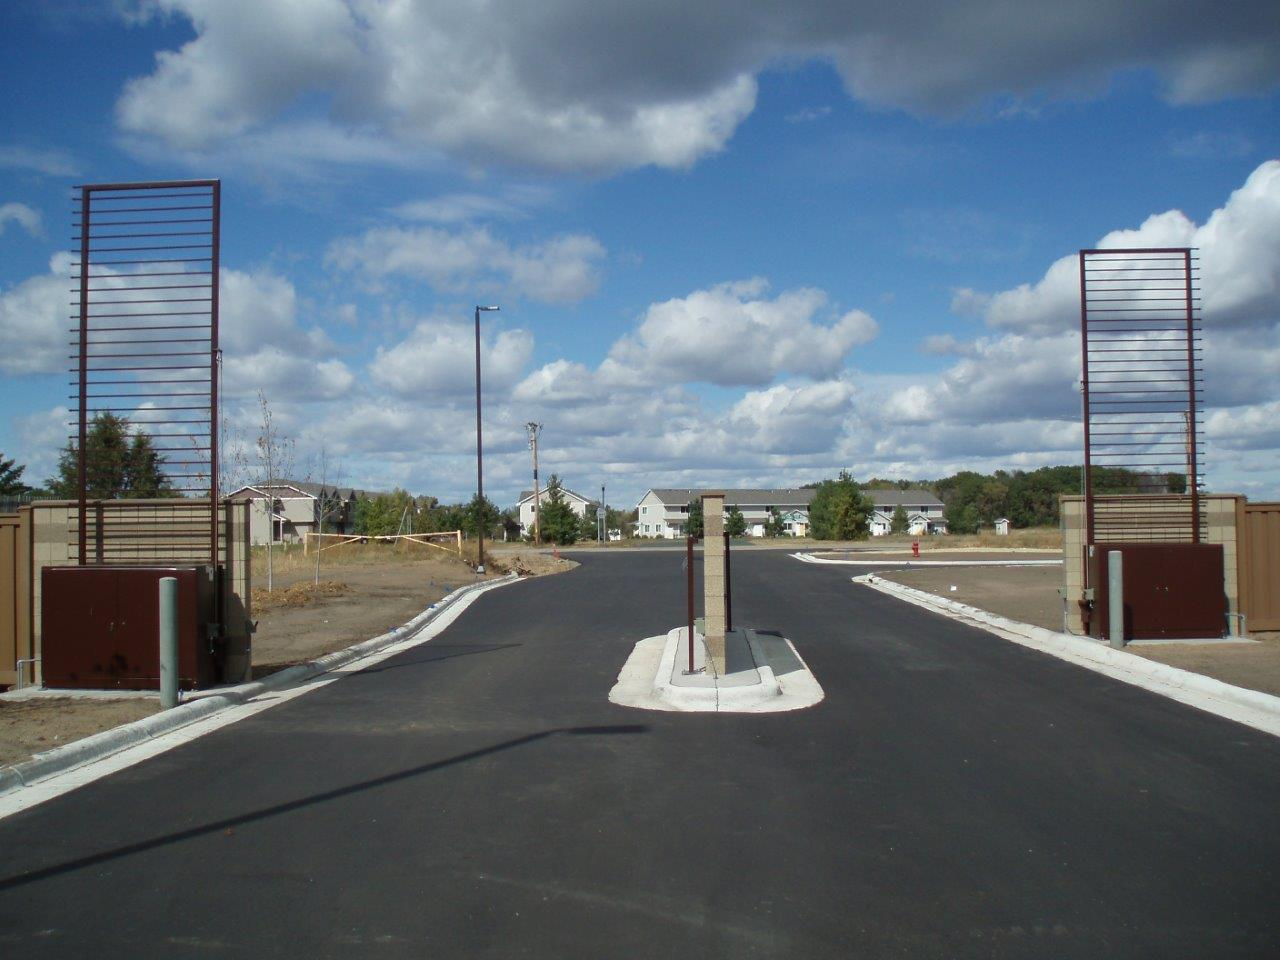 Automatic Entrance and Exit Vertical Pivot Gate System